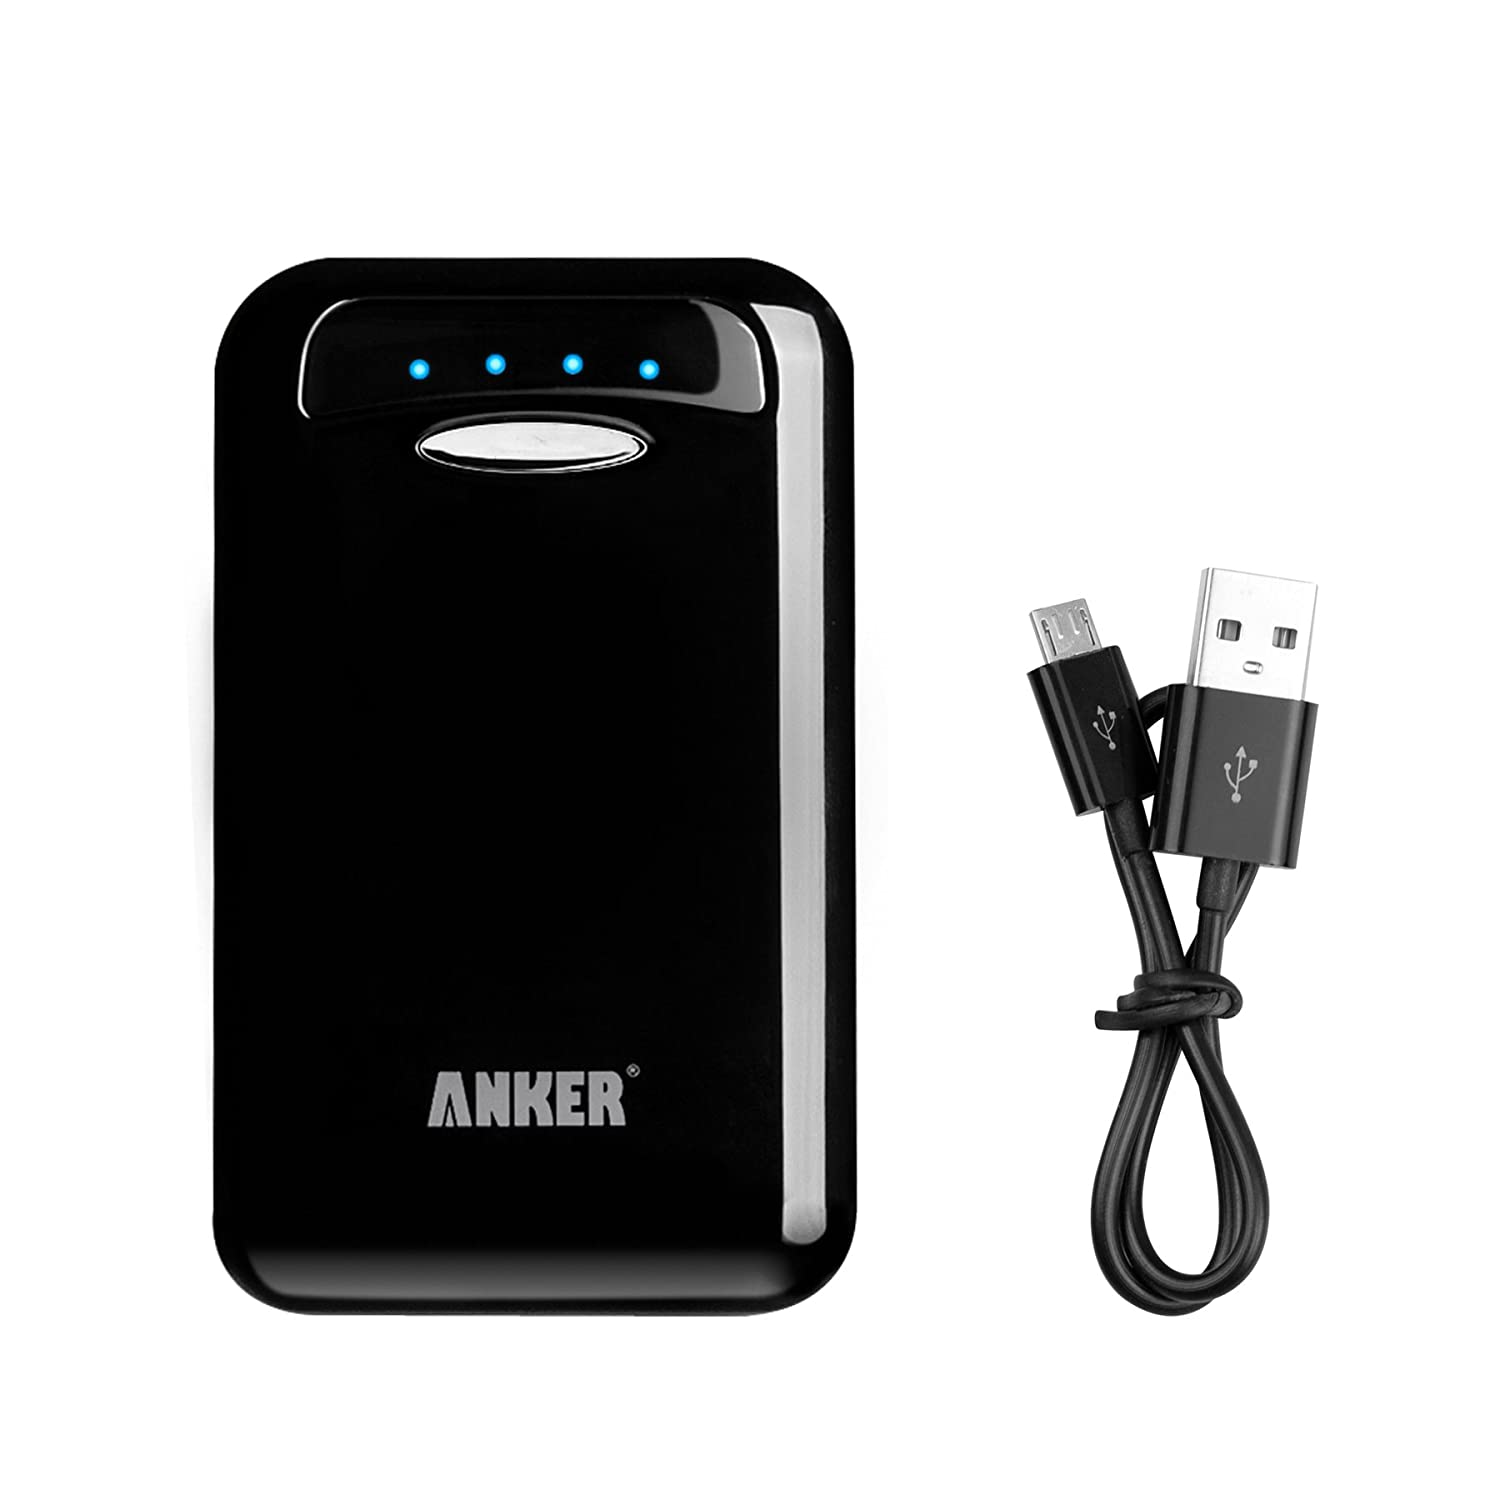 Anker® Astro E5 15000mAh Dual USB Port Externer Akku Batterie Power Bank Ladegerät für Smartphones, Android Phones Tablets, iPad, iPhone, Handy, PSP, GoPro, GPS [Powerversion mit Samsung Zellen - stark aber smart] - Schwarz